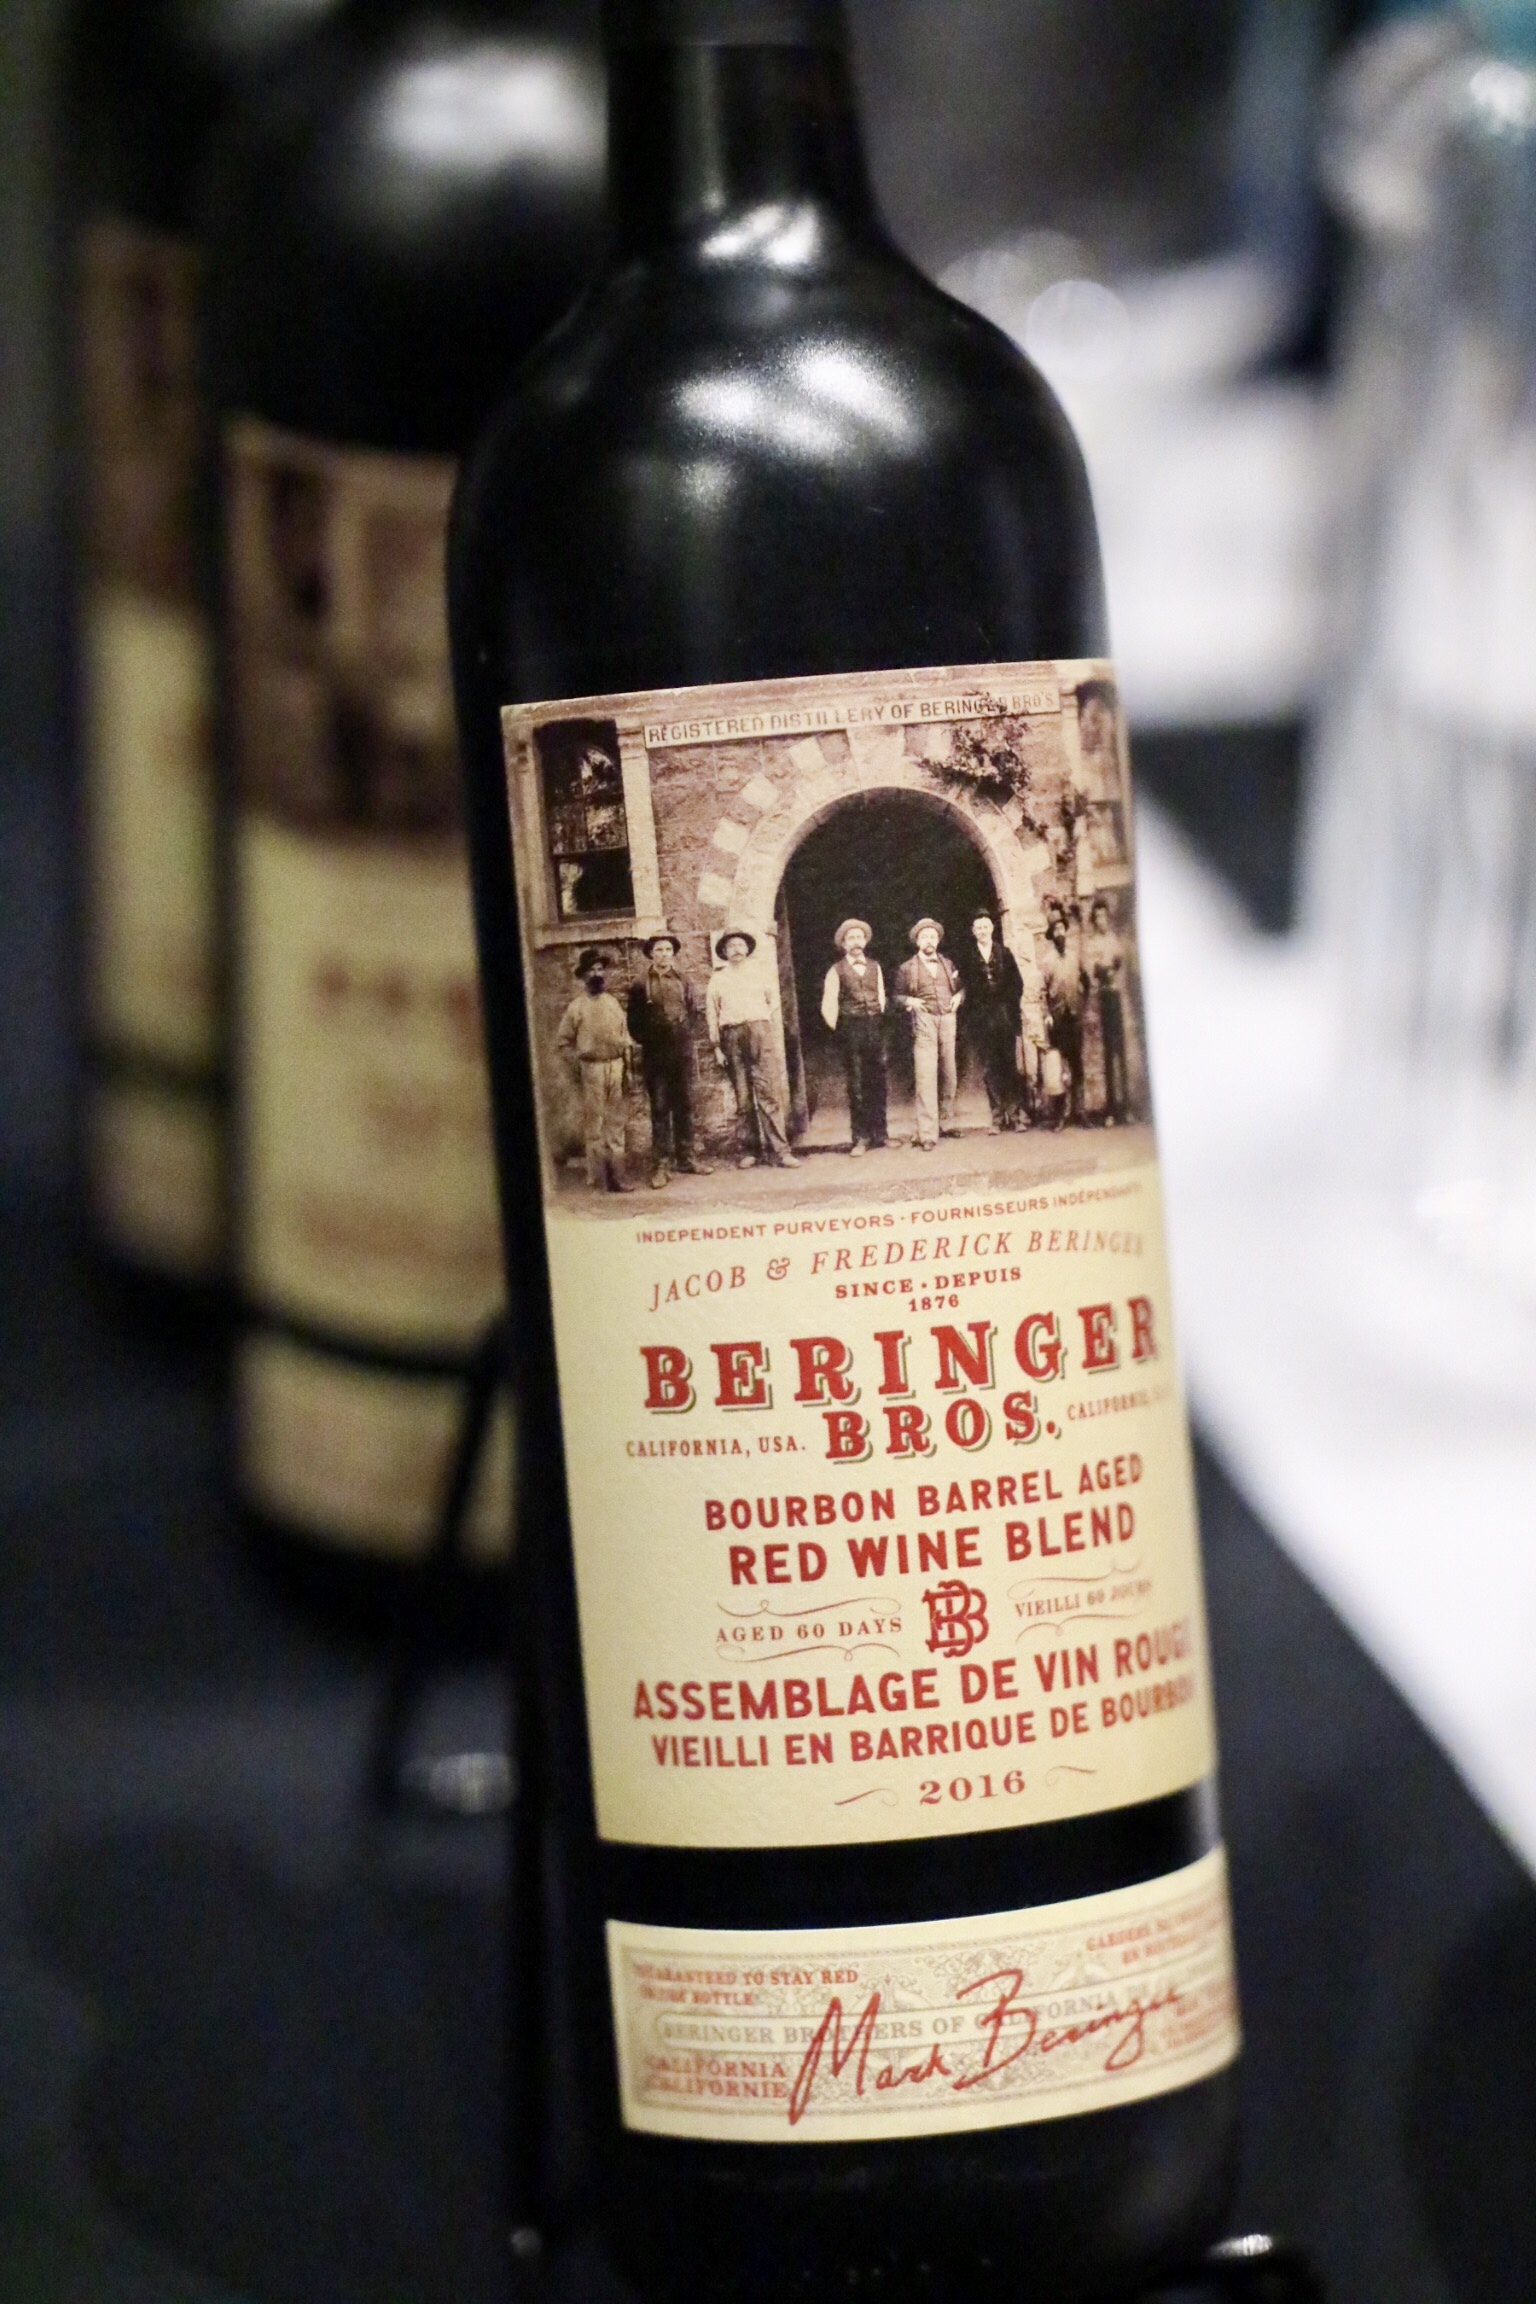 Beringer Brothers Bourbon Barrel Aged Red Blend 2016